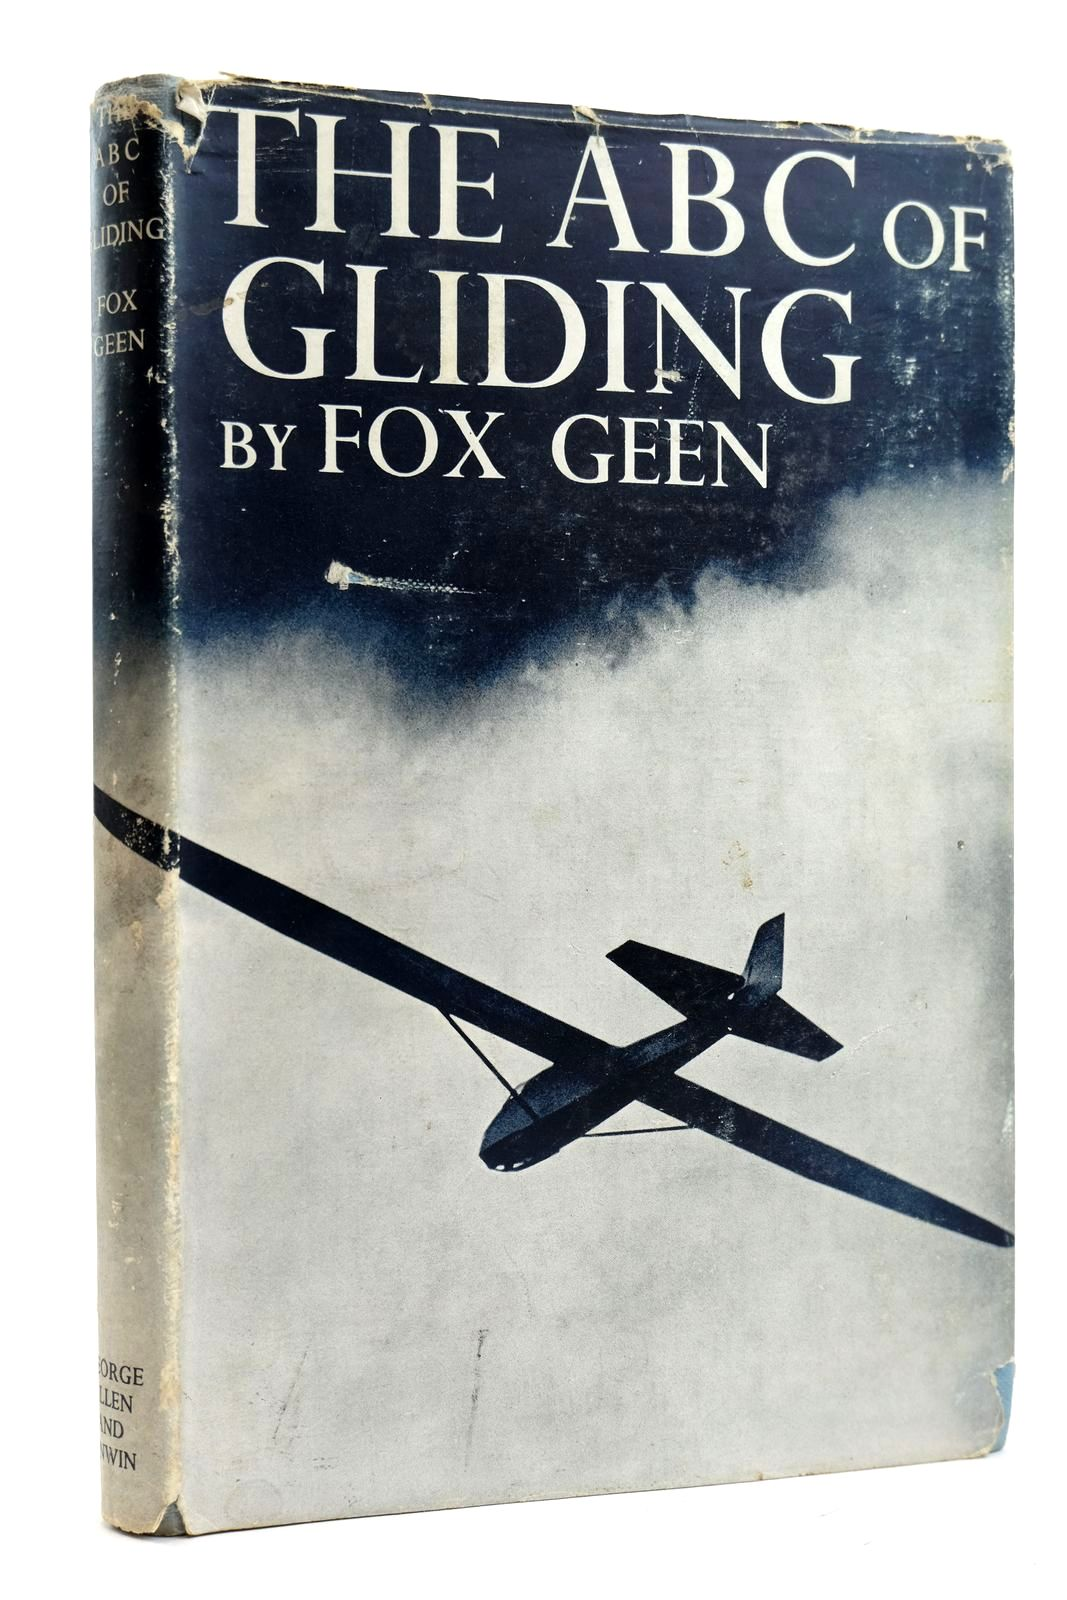 Photo of THE ABC OF GLIDING written by Geen, Fox published by George Allen & Unwin Ltd. (STOCK CODE: 2131880)  for sale by Stella & Rose's Books